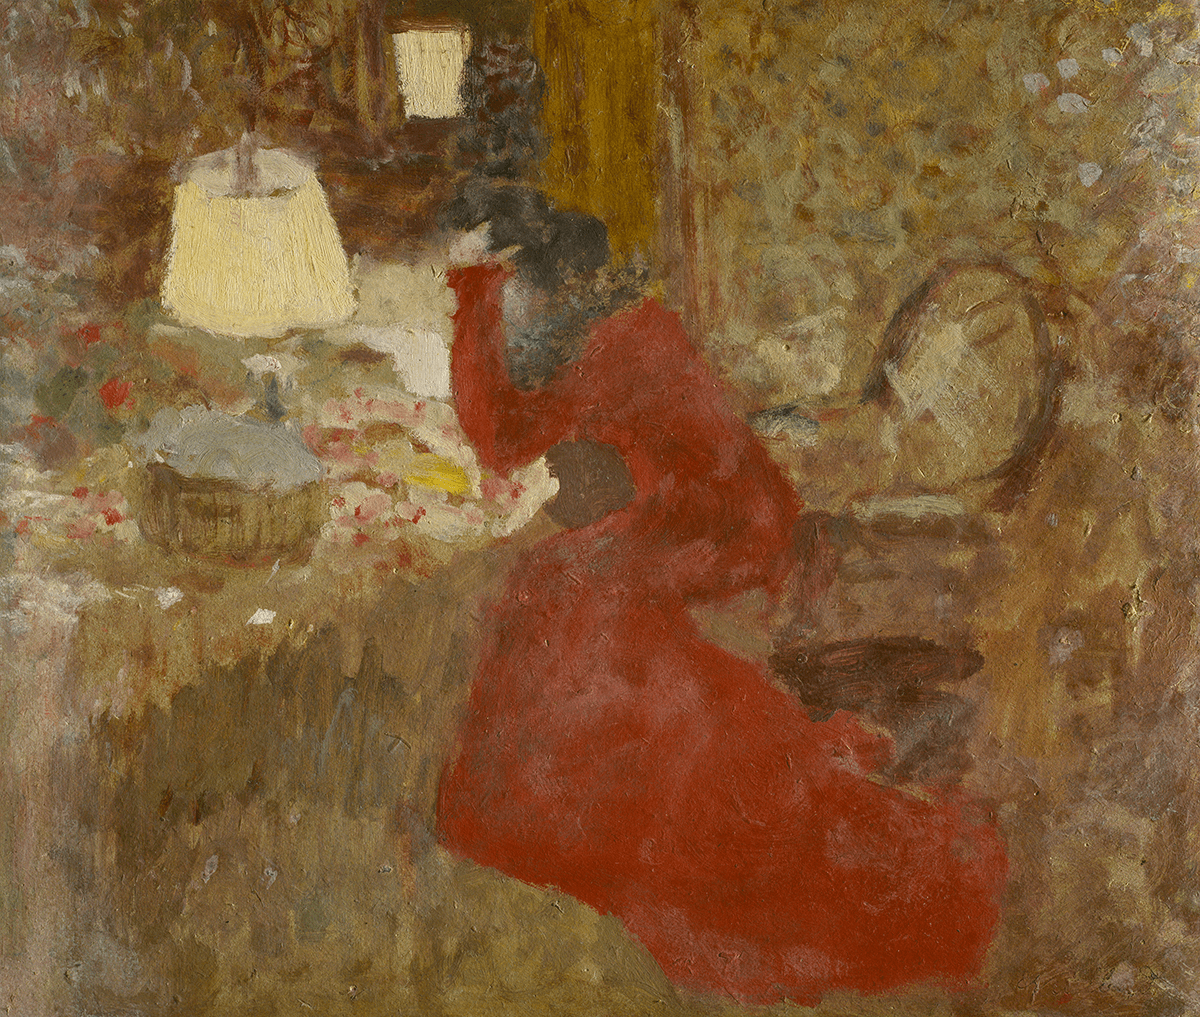 A solitary female figure in profile in a red dress is perched on the edge of an armchair. Head in hand, she hunches over a table with a lamp and basket.